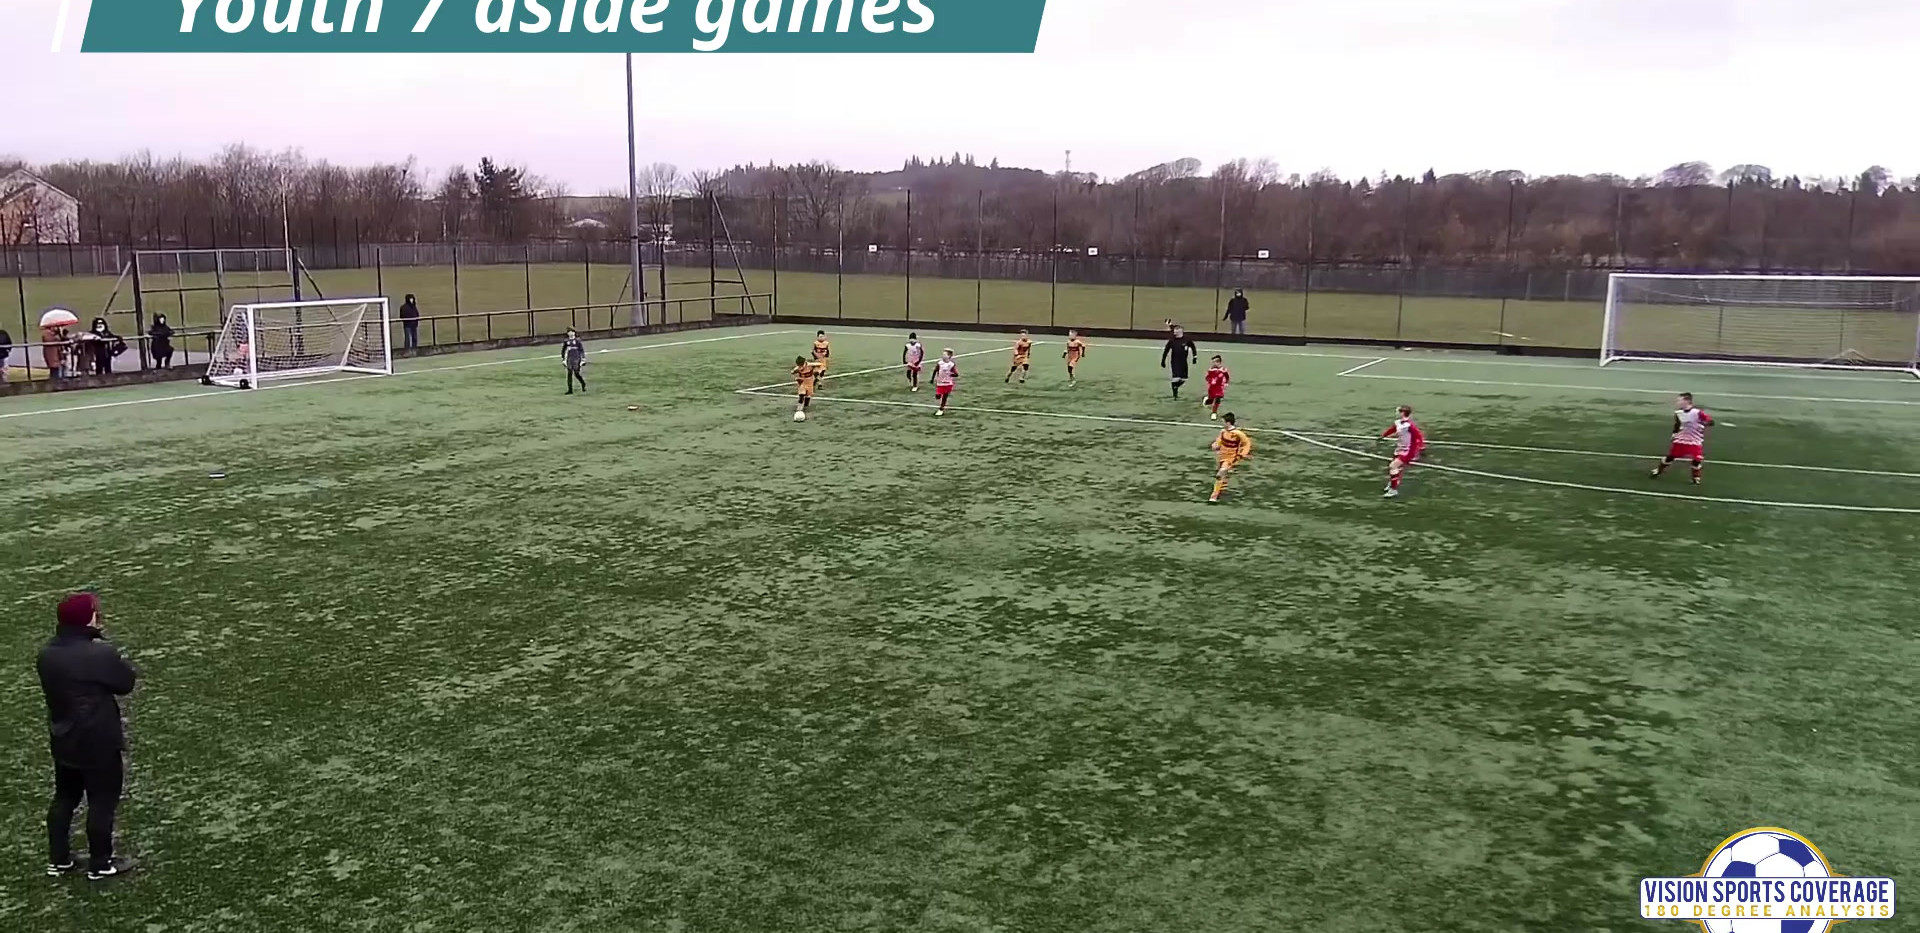 Youth 7 aside games website clip.mp4